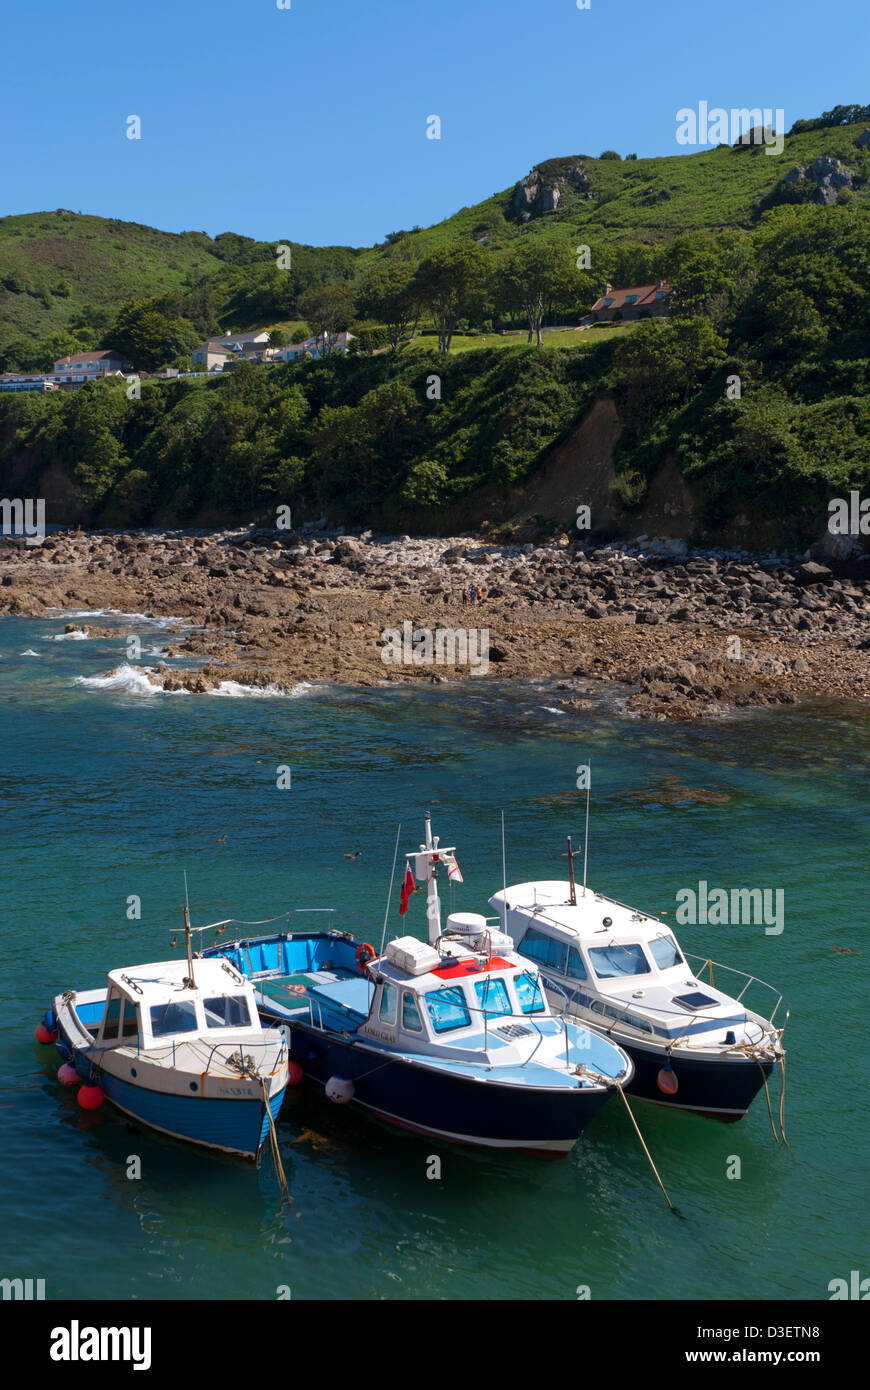 Three small fishing boats in the harbour at Bonne Nuit, Jersey, Channel Islands, UK - Stock Image